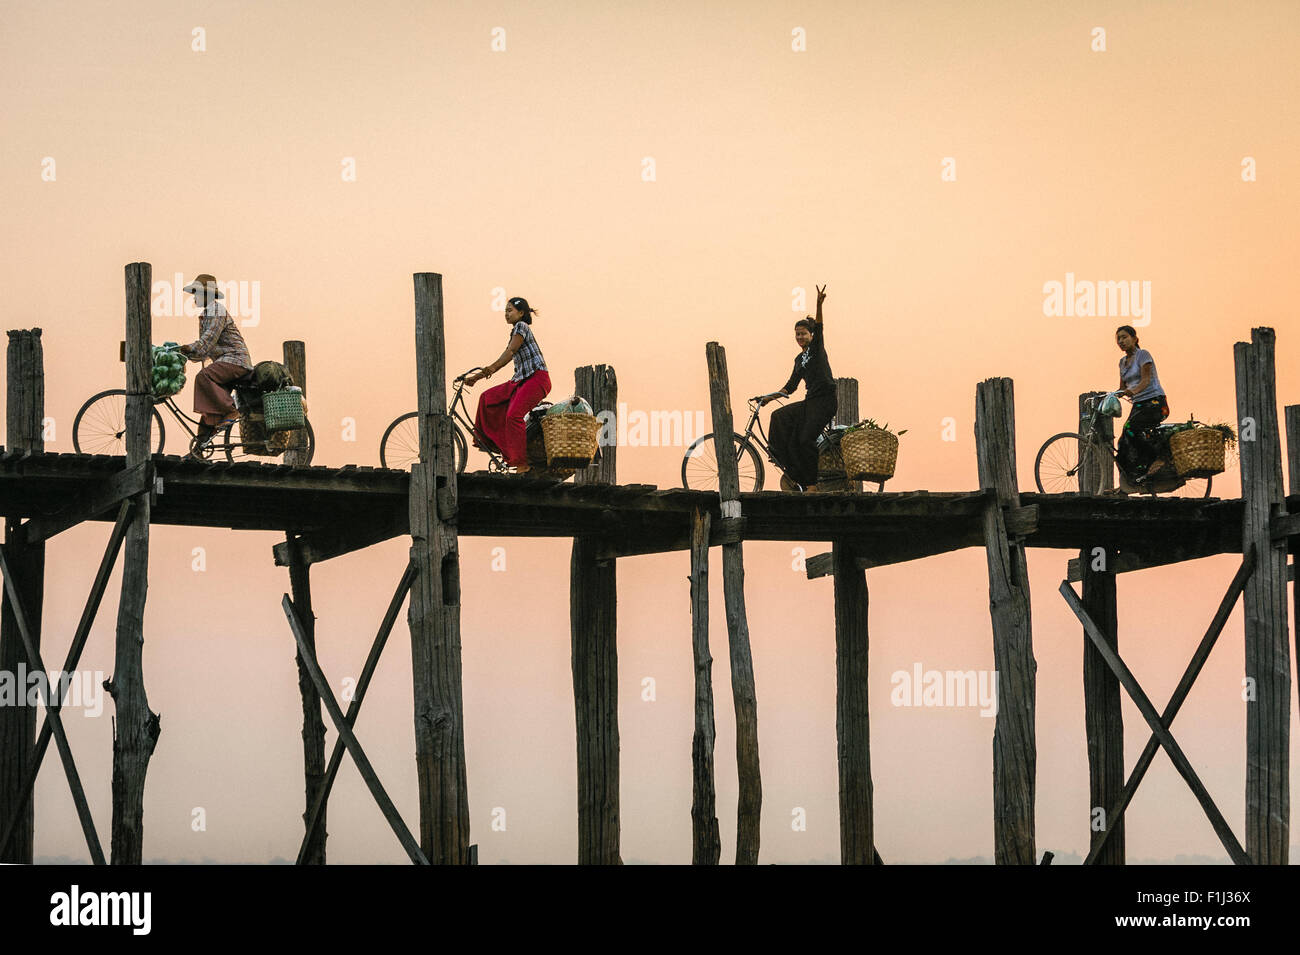 Burmese woman flashes peace sign on a bike riding over U Bein Bridge at sunset.  U Bein Bridge Burma, Myanmar Stock Foto